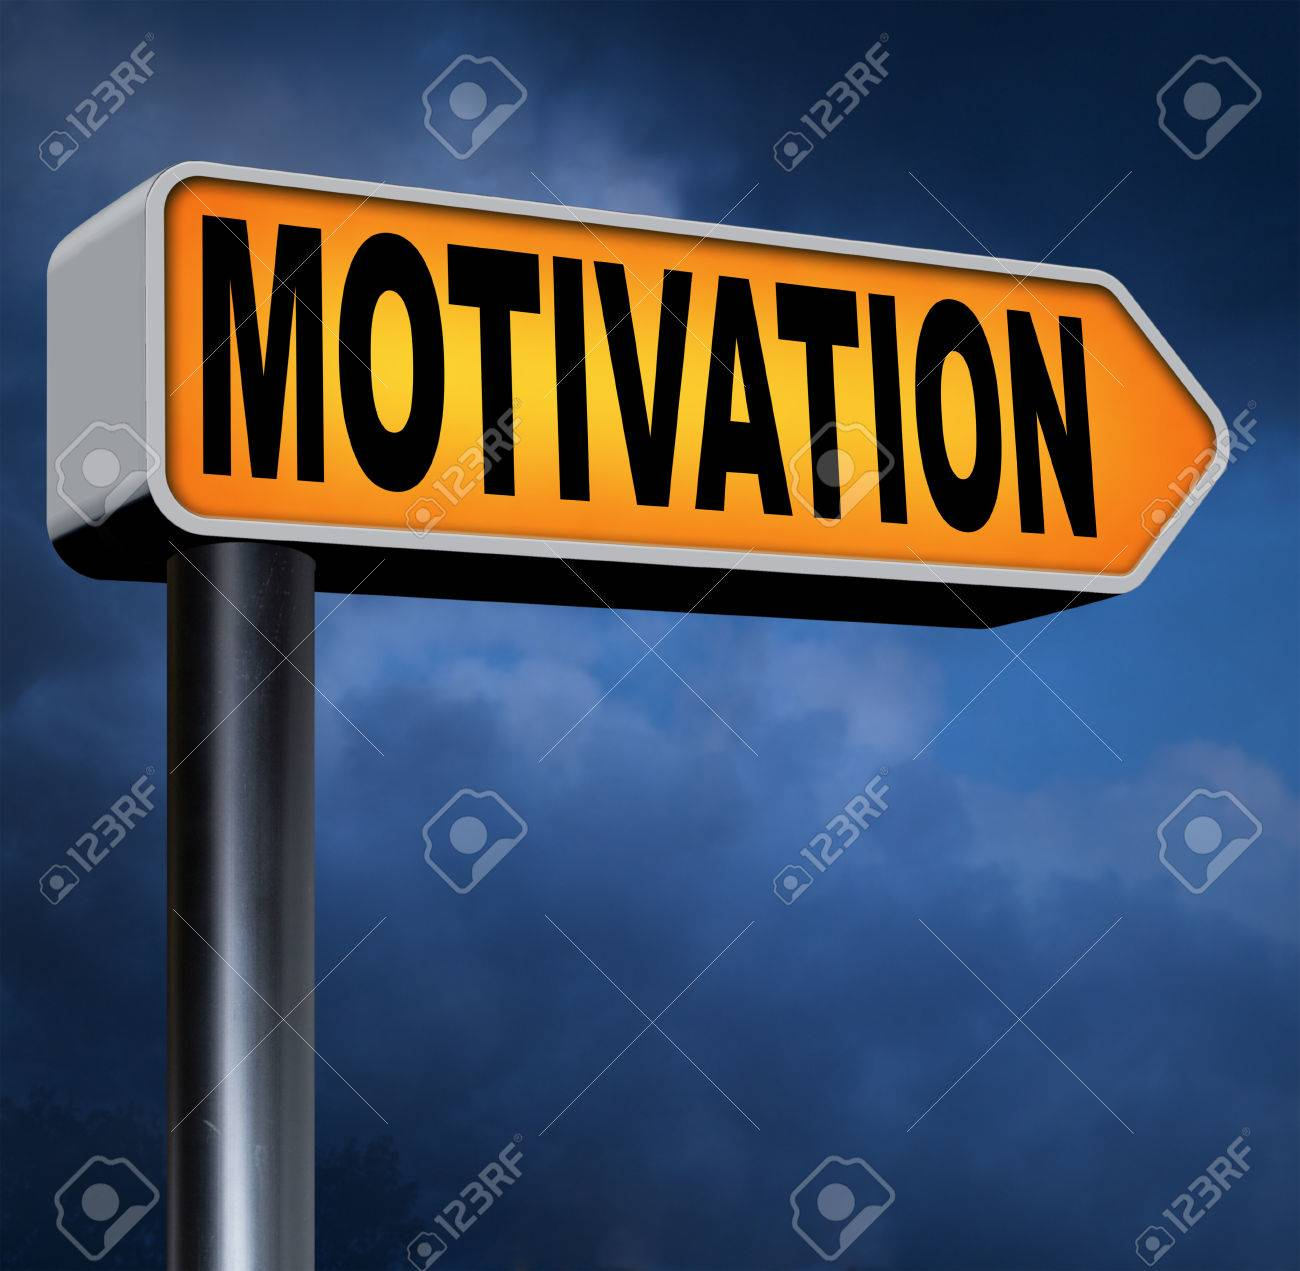 motivation work or job inspiration try again and try hard to stock photo motivation work or job inspiration try again and try hard to go for it and to make a change